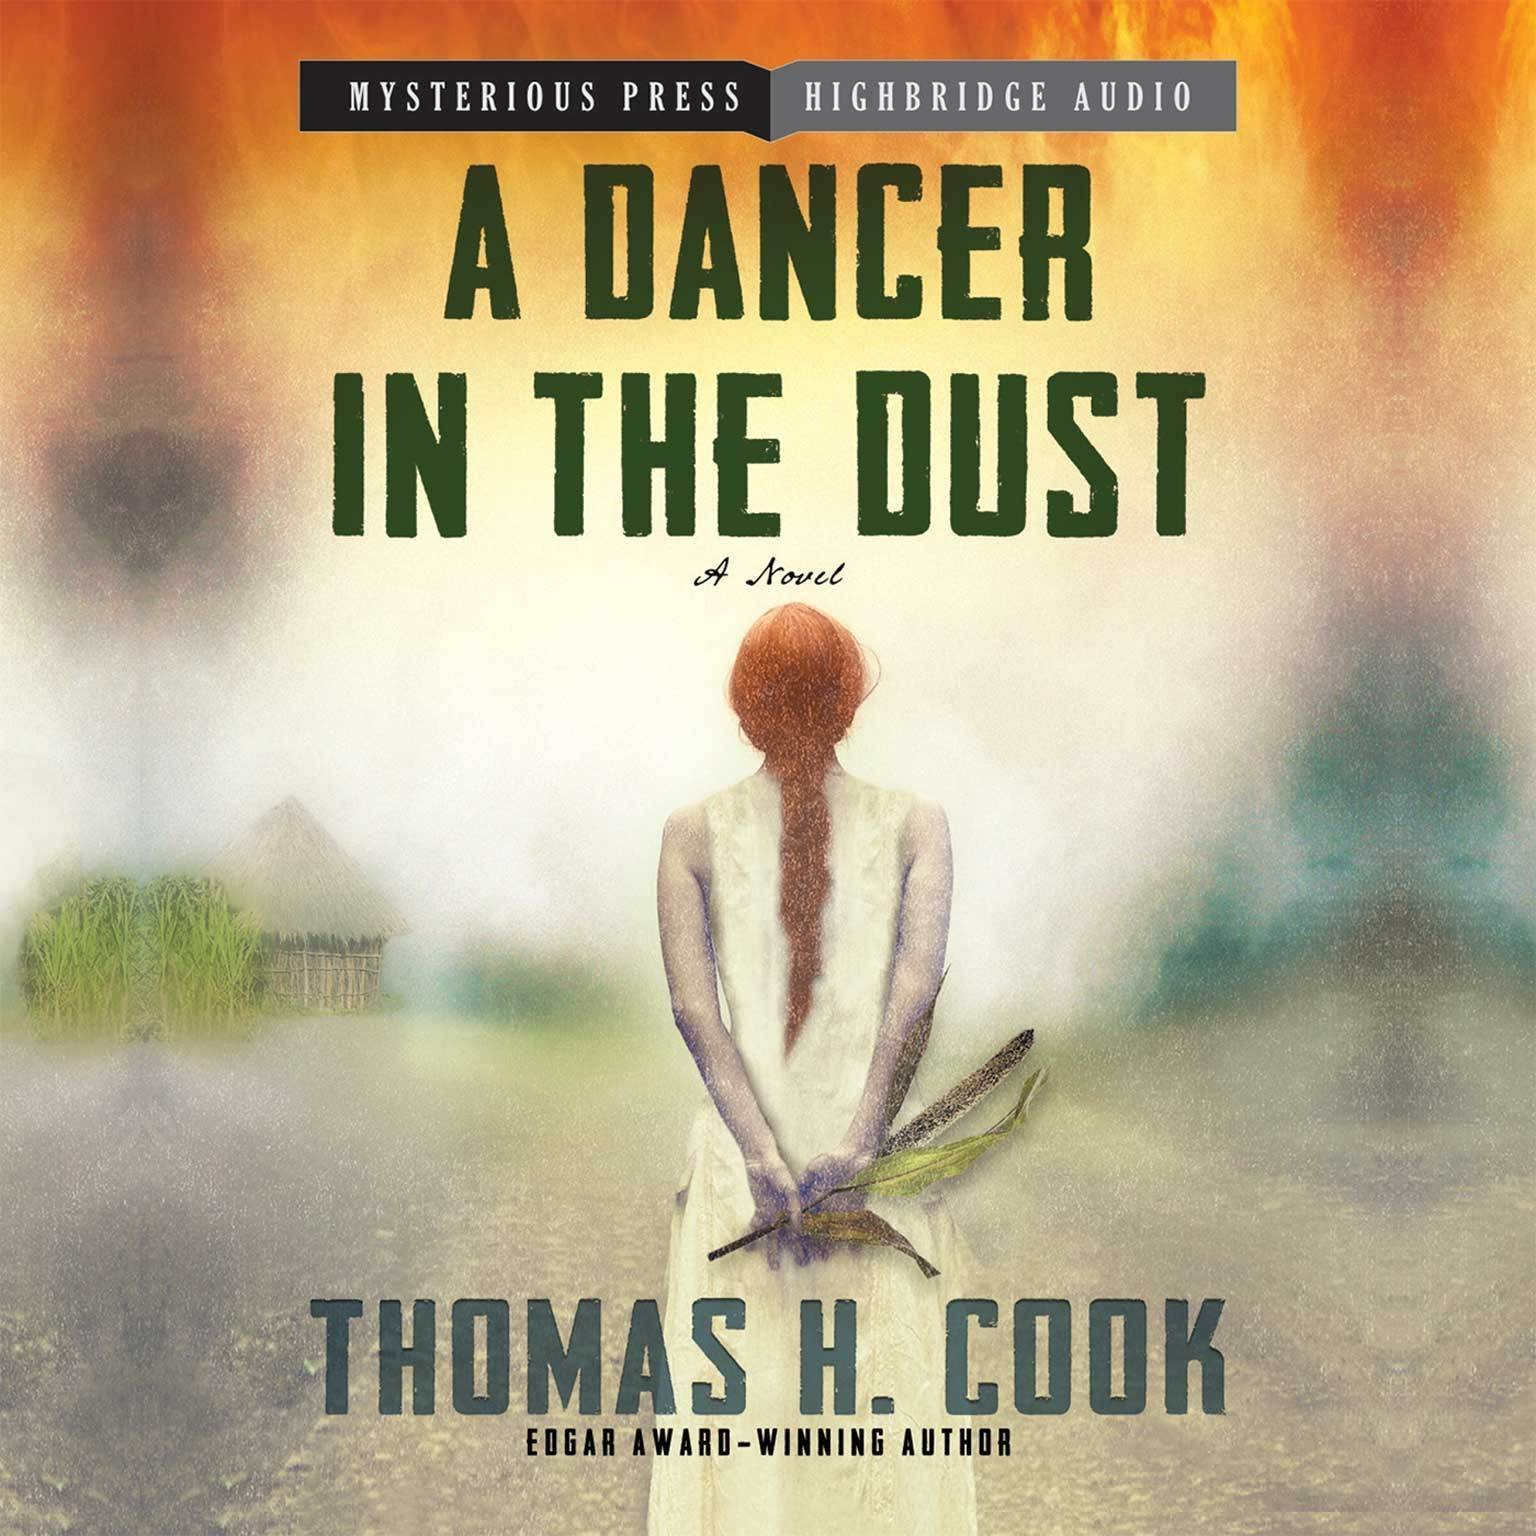 Printable A Dancer in the Dust Audiobook Cover Art